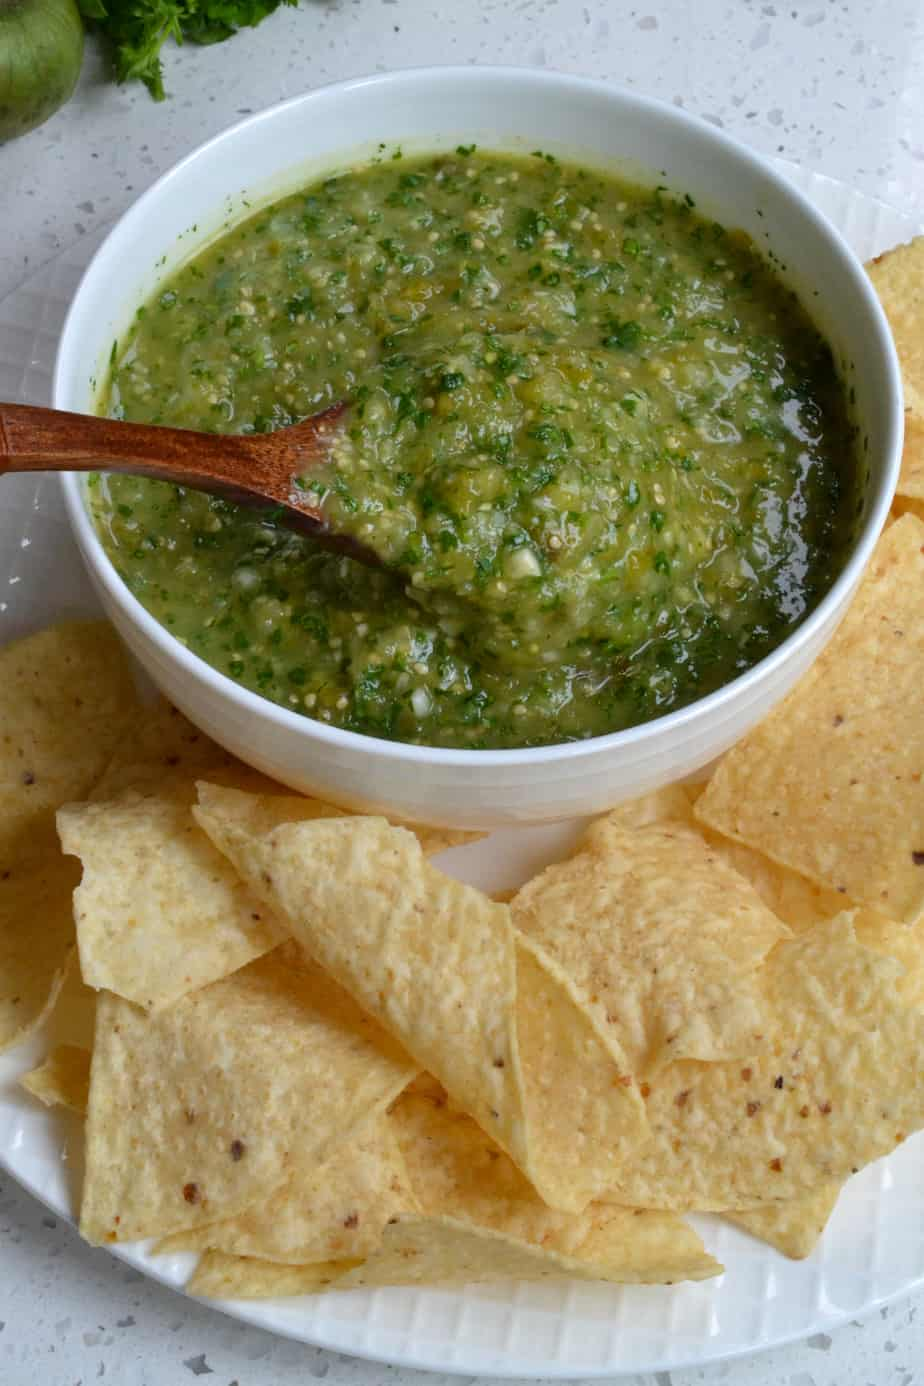 A spoonful of fresh salsa made from tomatillos.